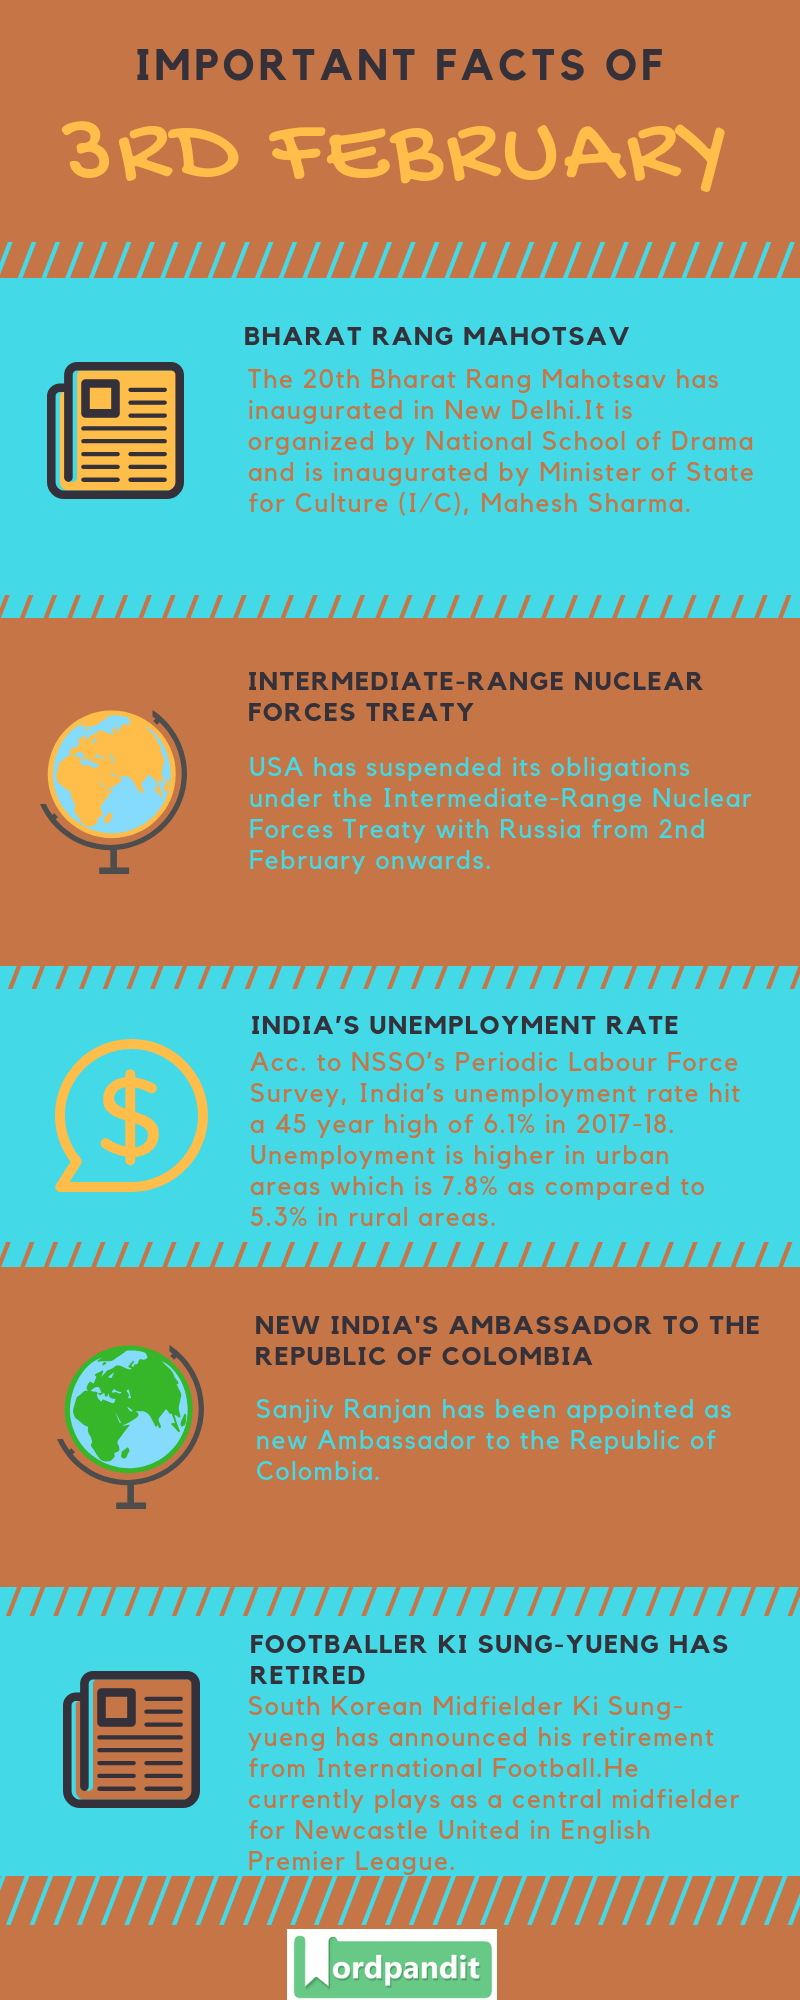 Daily Current Affairs 3 February 2019 Current Affairs Quiz 3 February 2019 Current Affairs Infographic